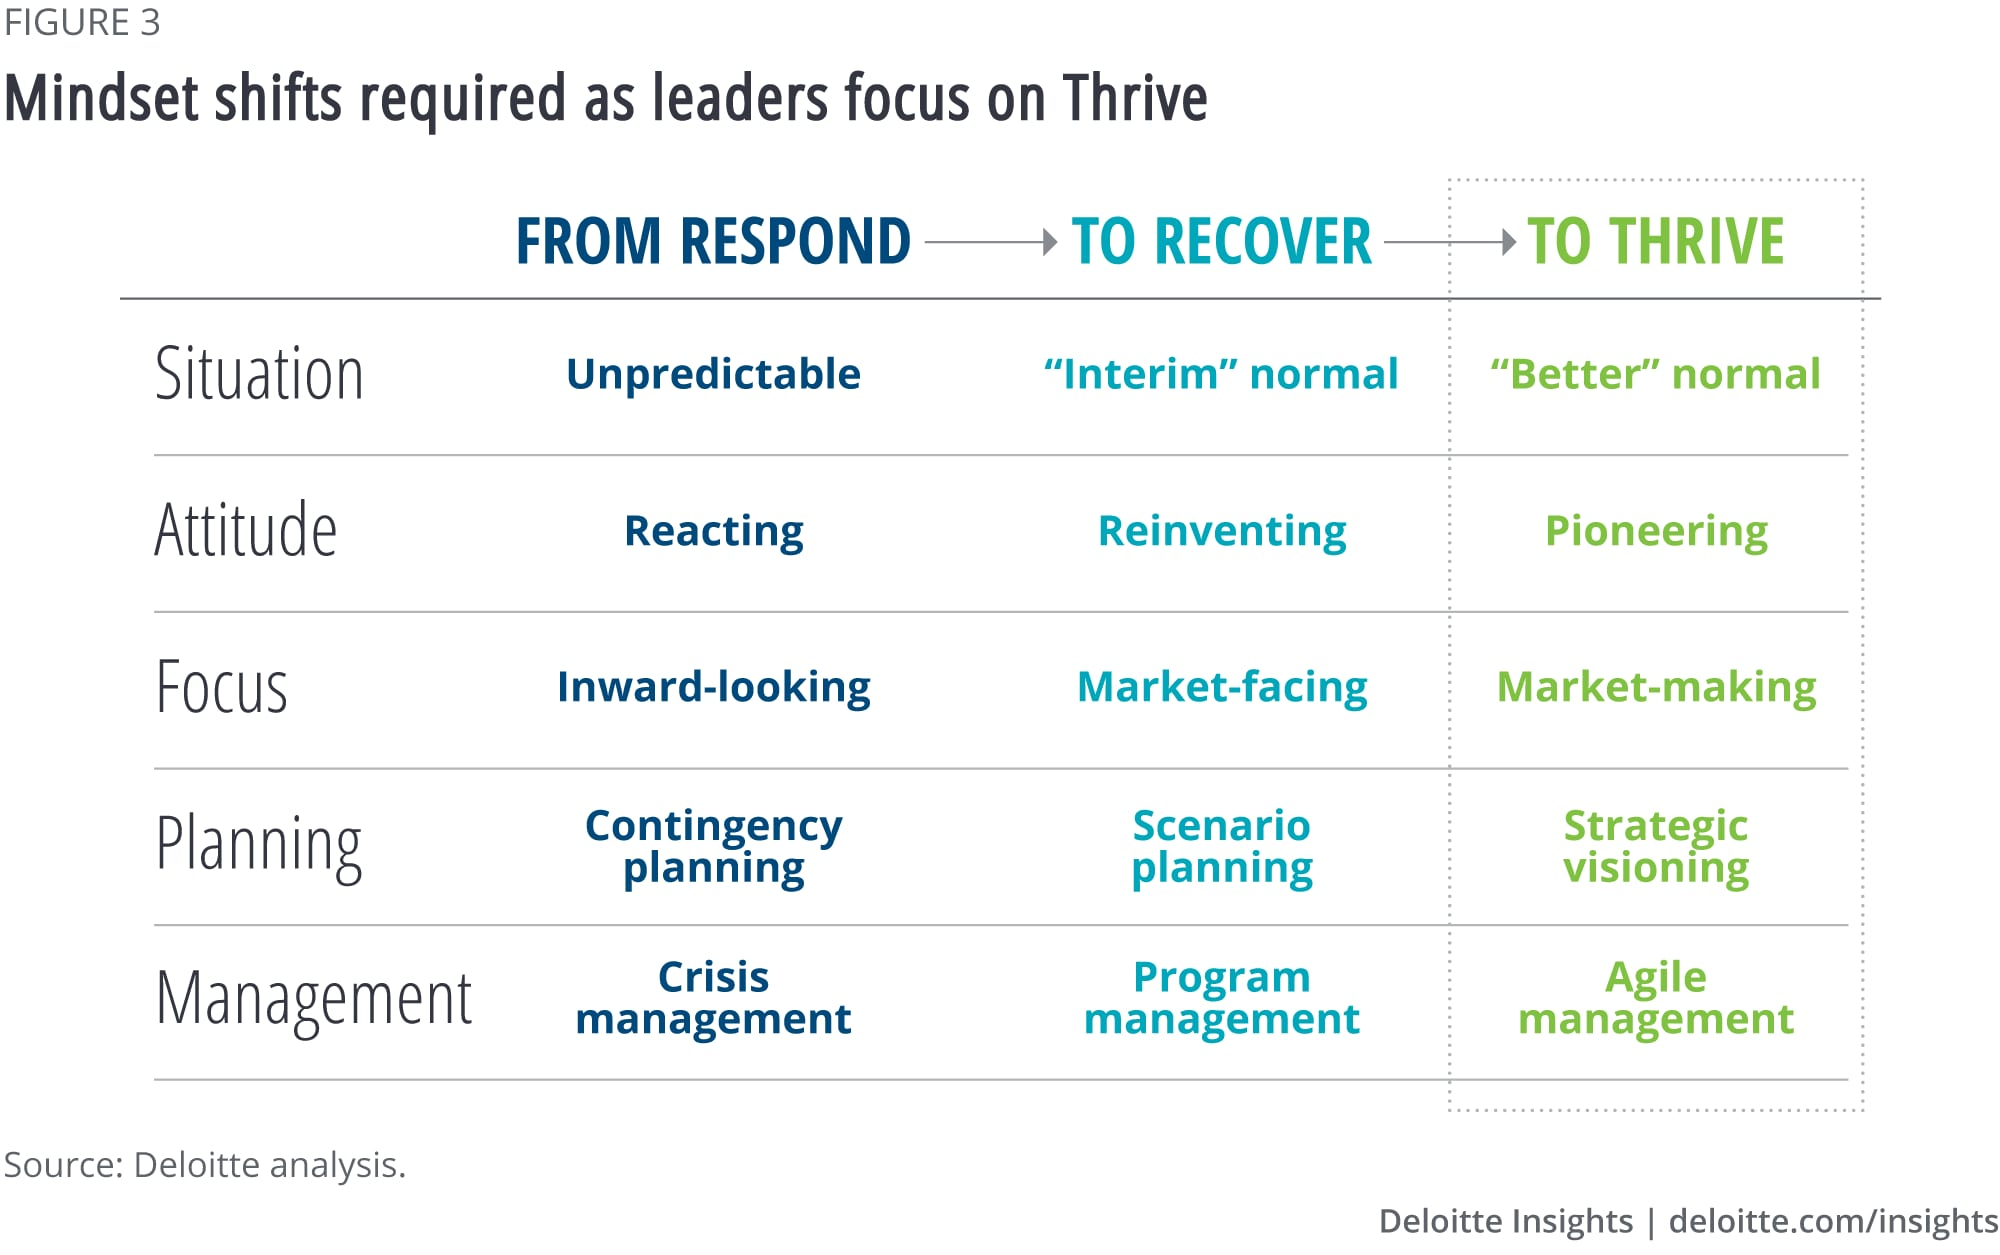 Mindset shifts as leaders focus on Thrive